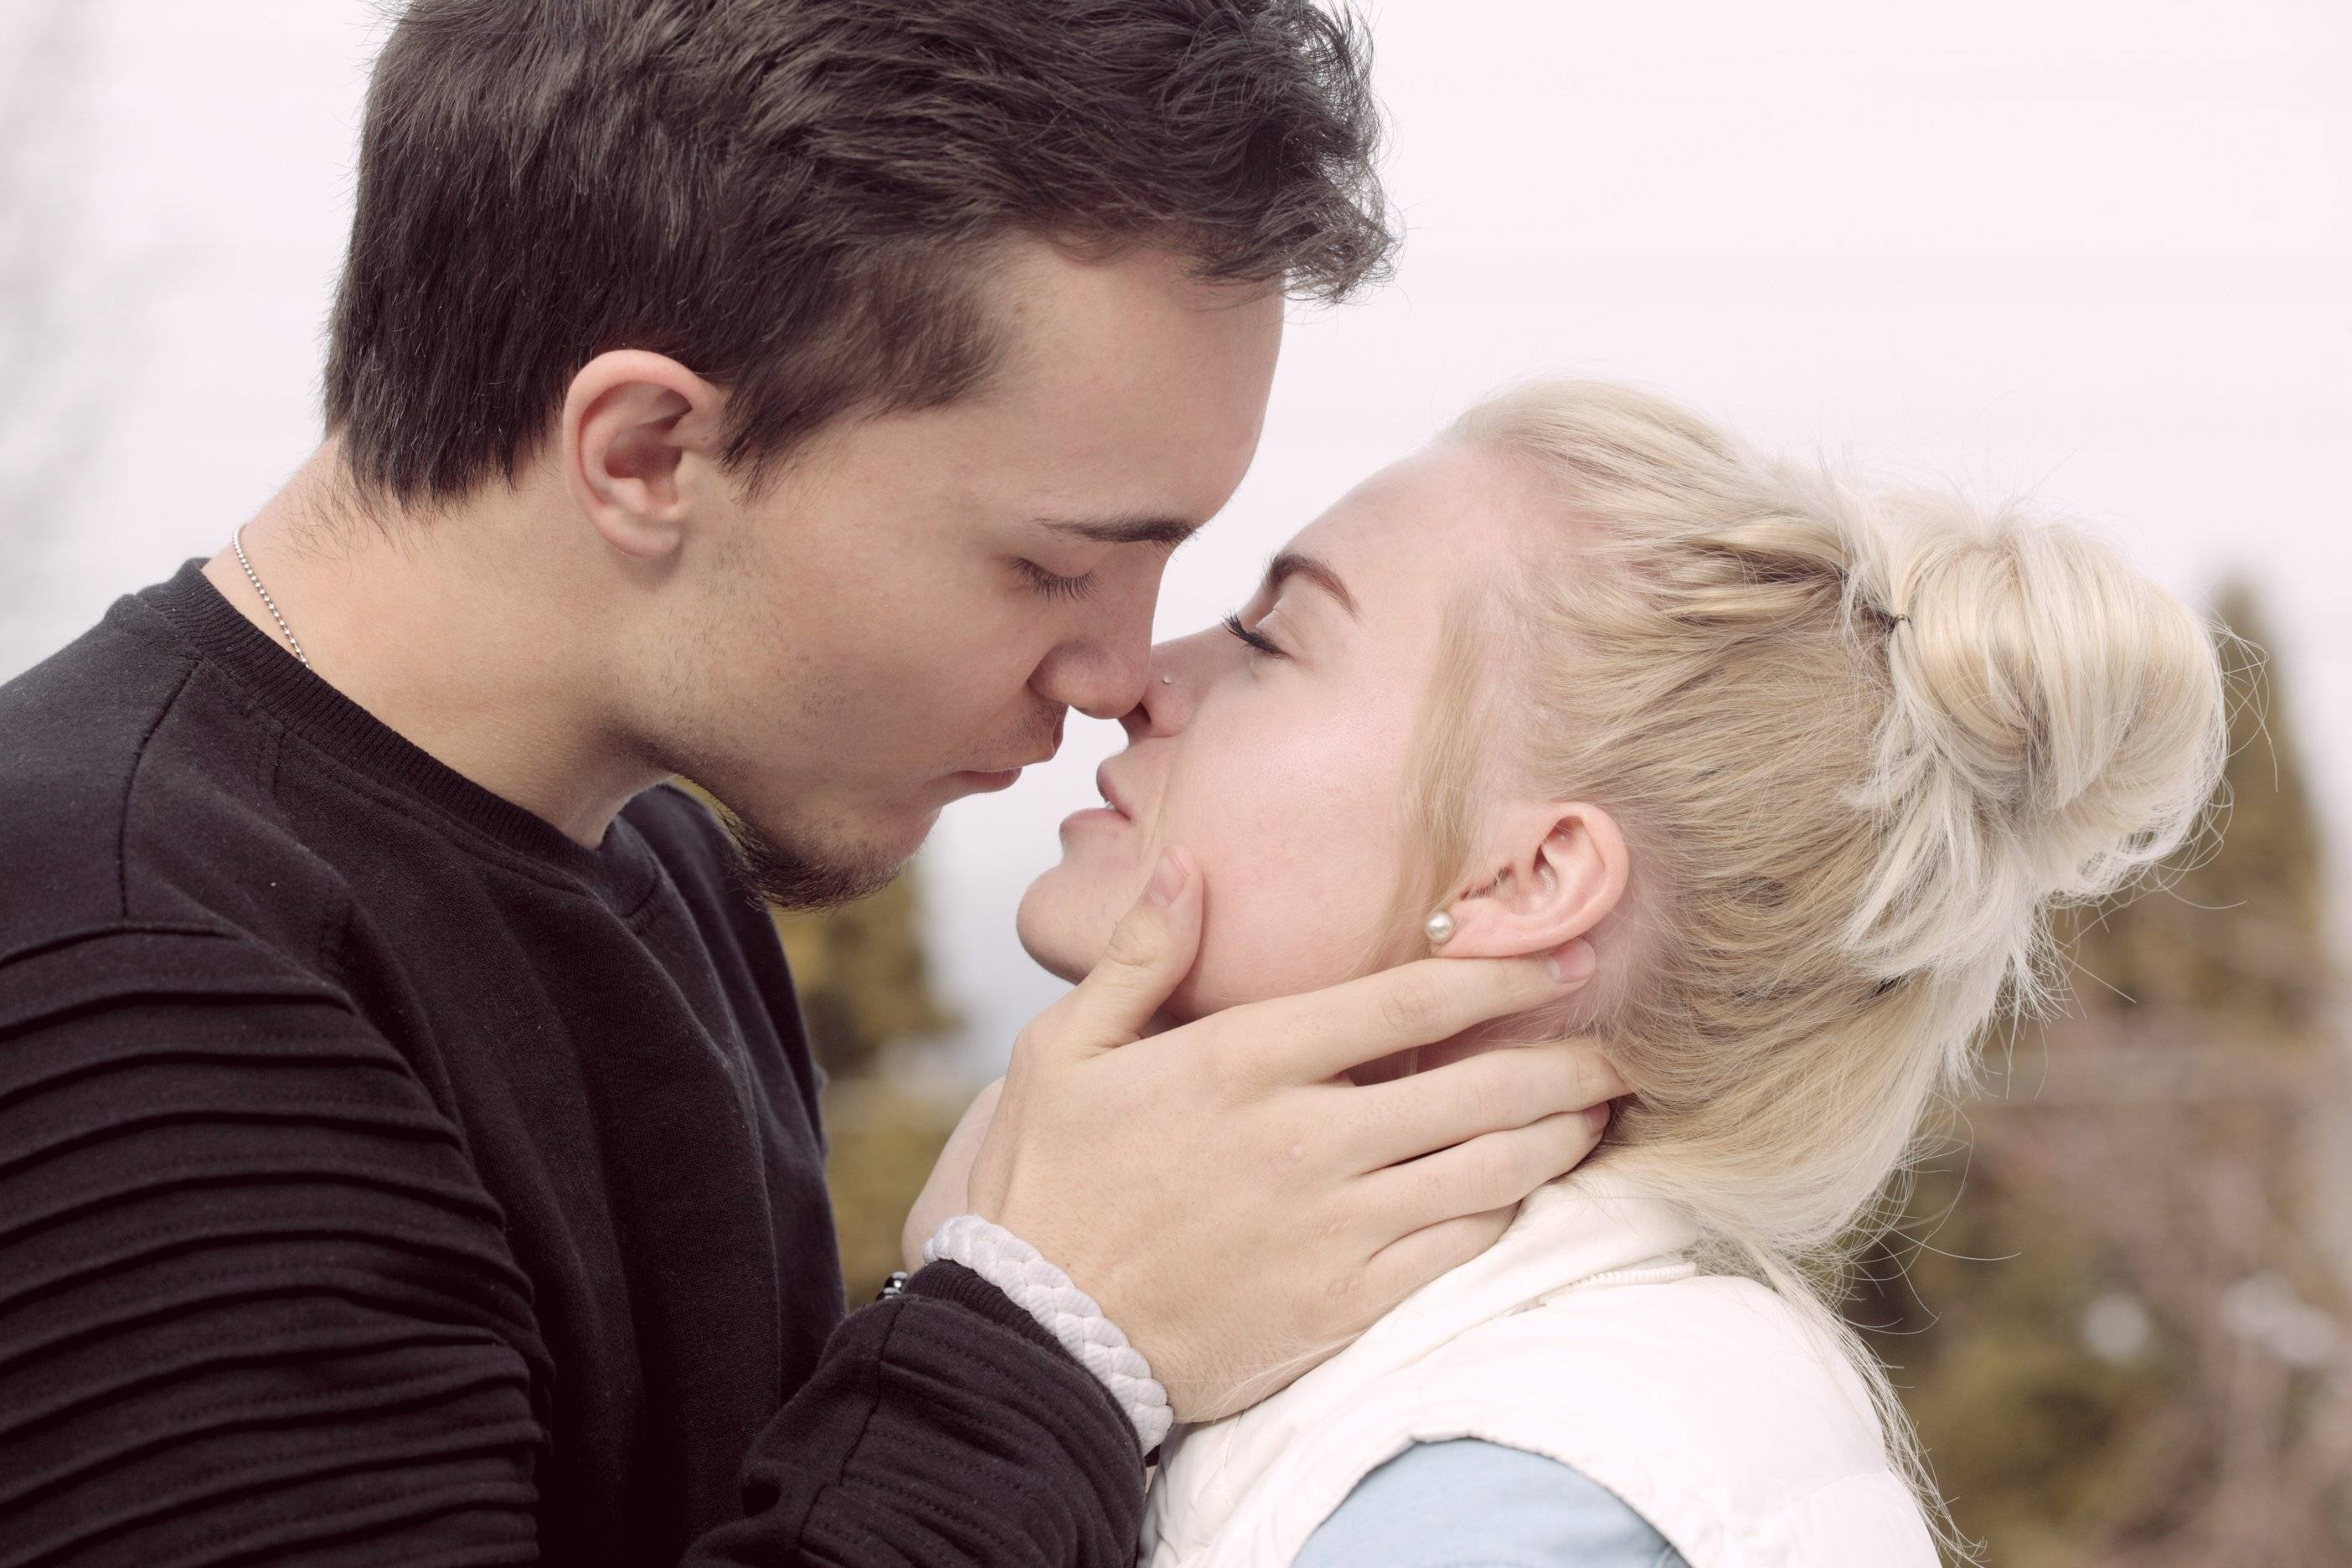 Things to Know About First Kisses